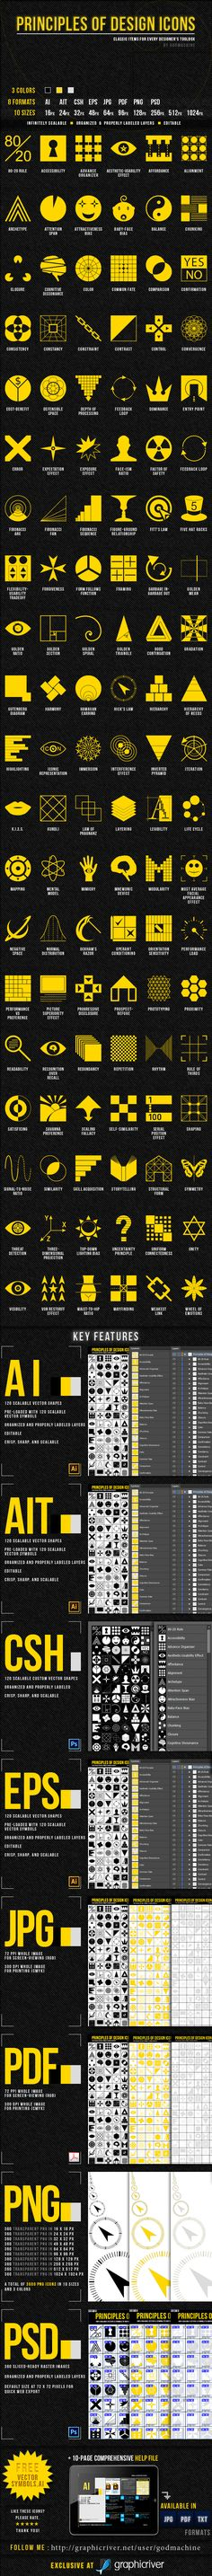 Principles of Design Icons on Behance                                                                                                                                                                                 More